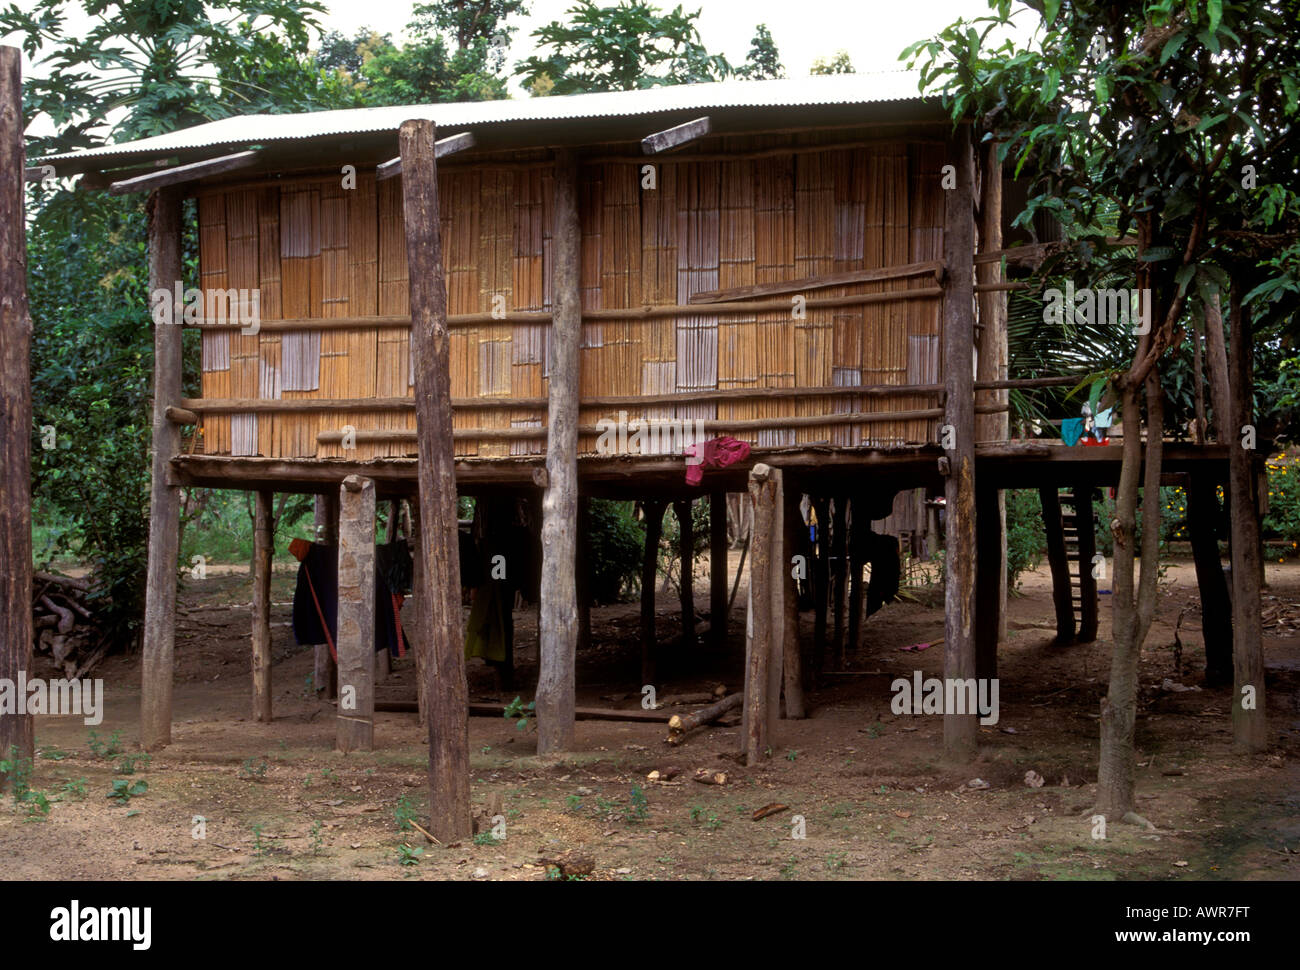 lisu hilltribe photos lisu hilltribe images alamy. Black Bedroom Furniture Sets. Home Design Ideas